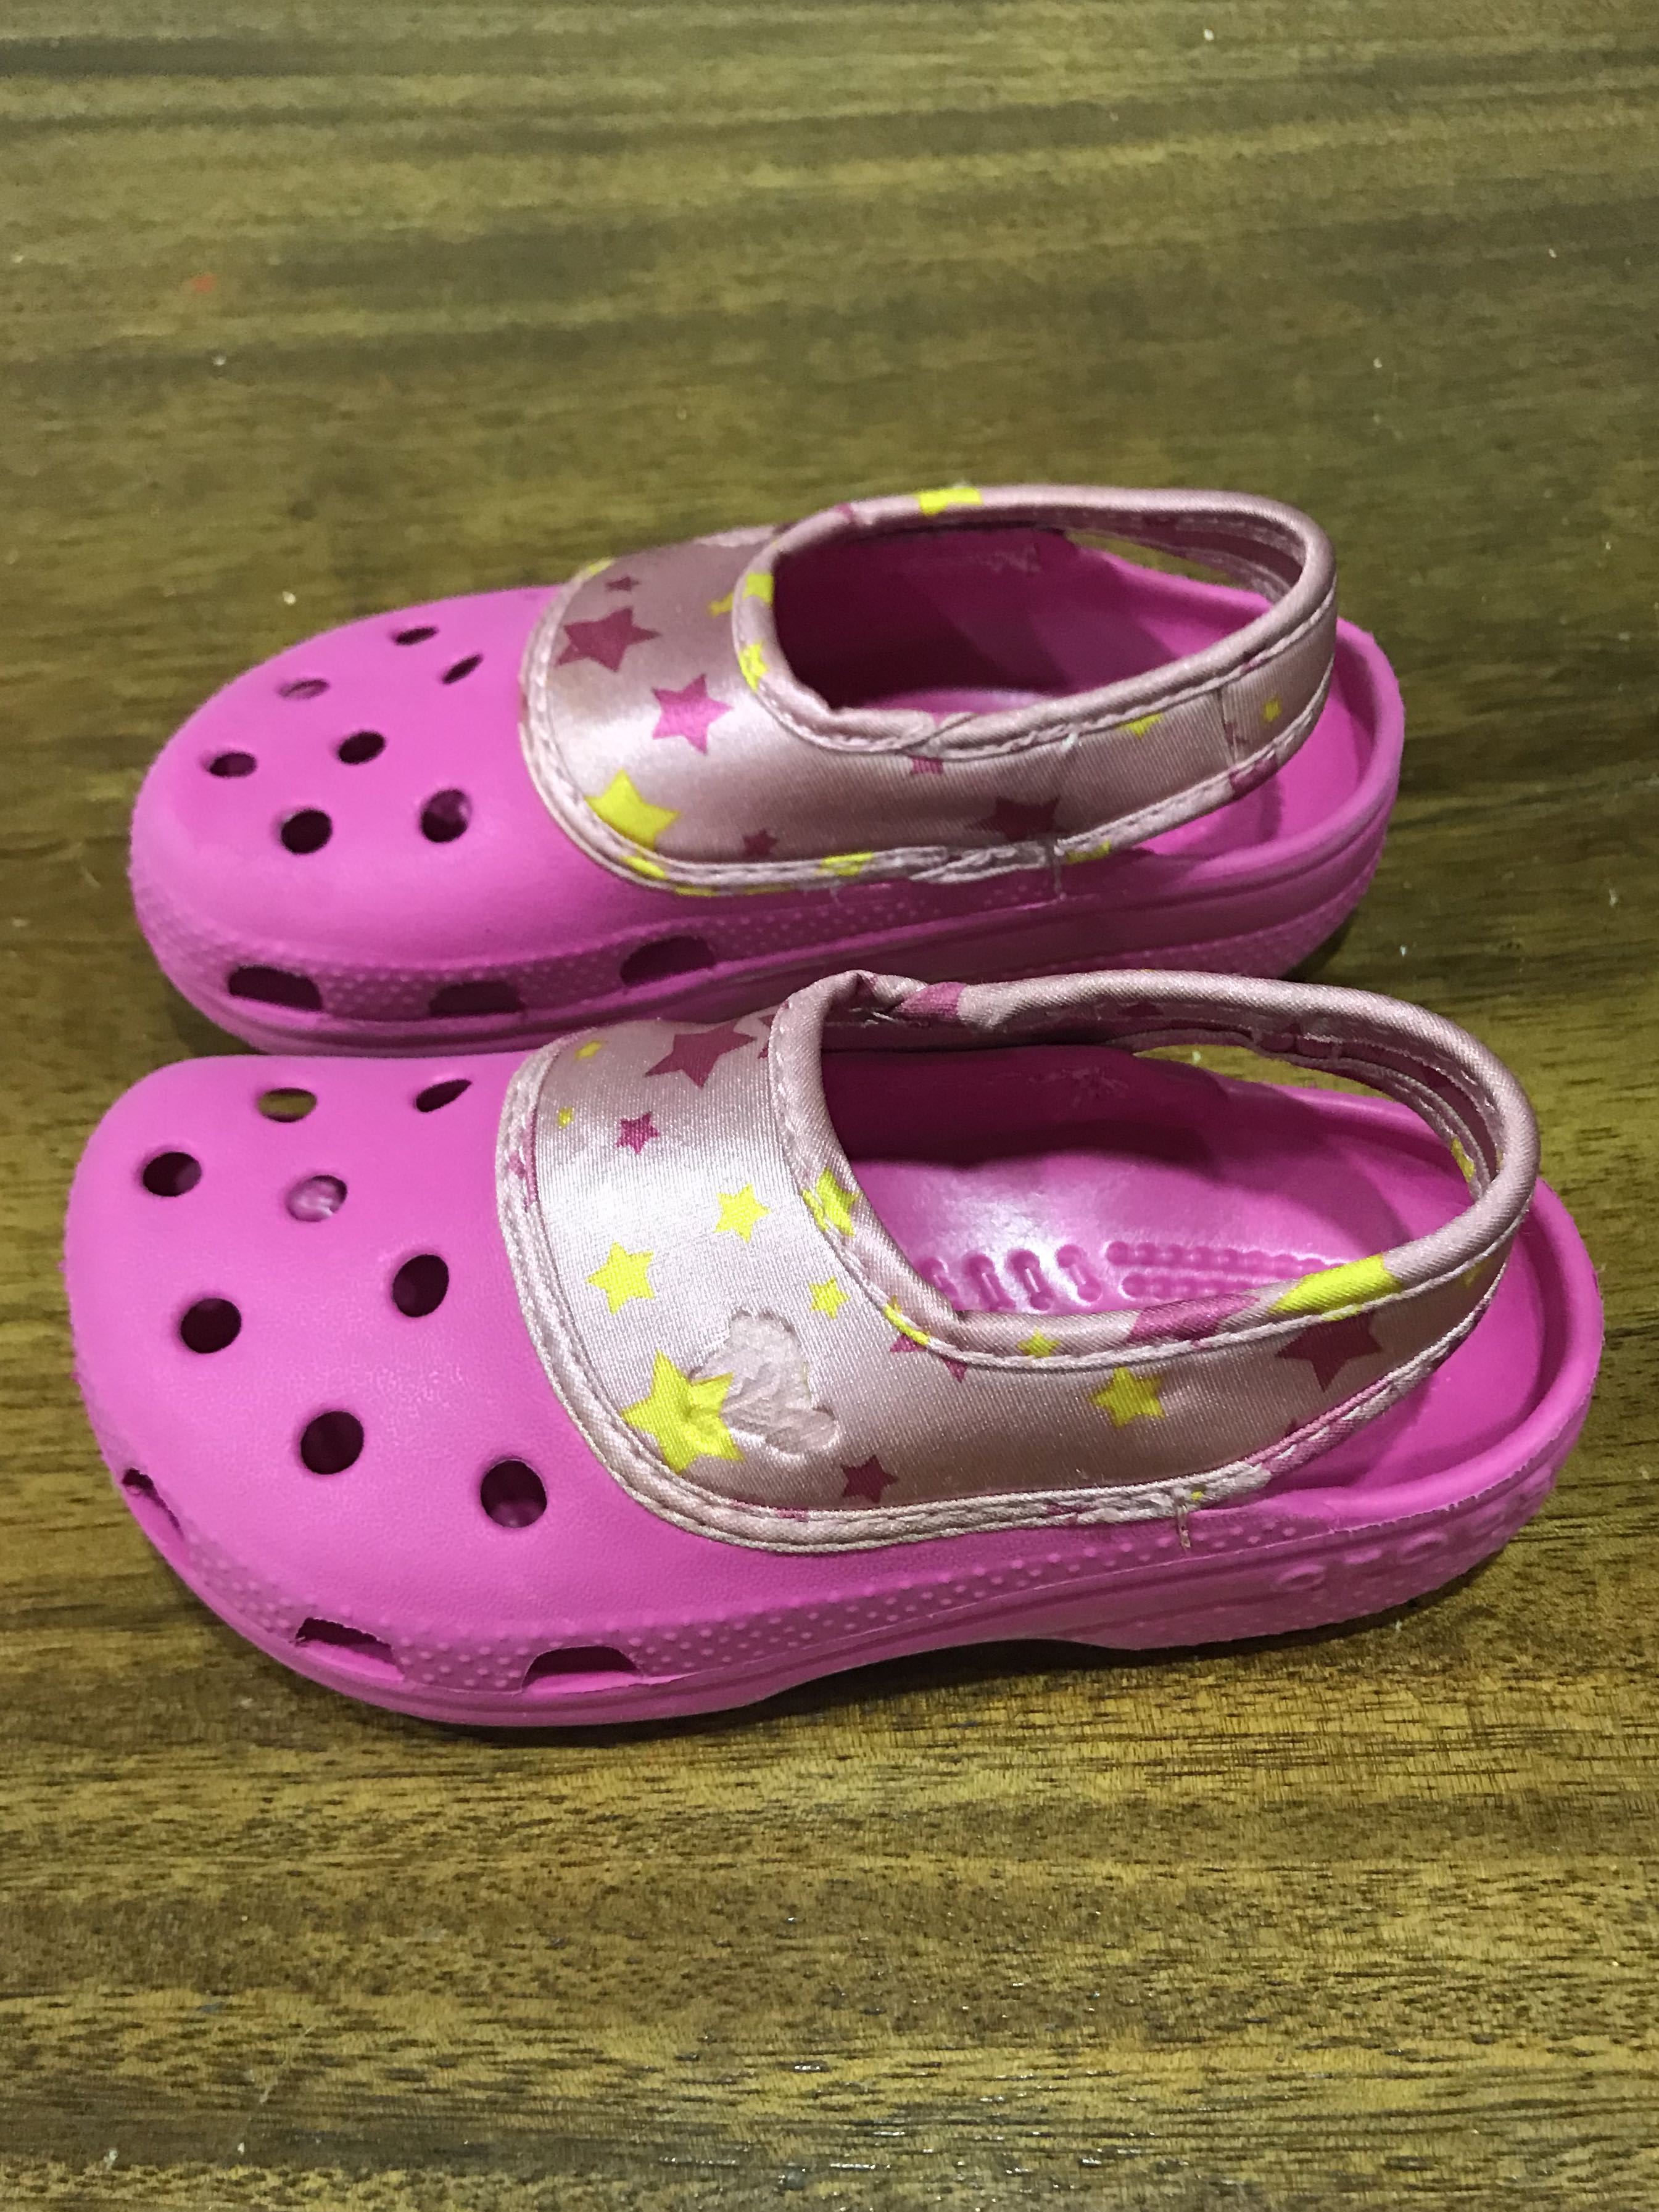 bf0d97791a25 FREE MAIL!! Pink Crocs Sandals for Girl